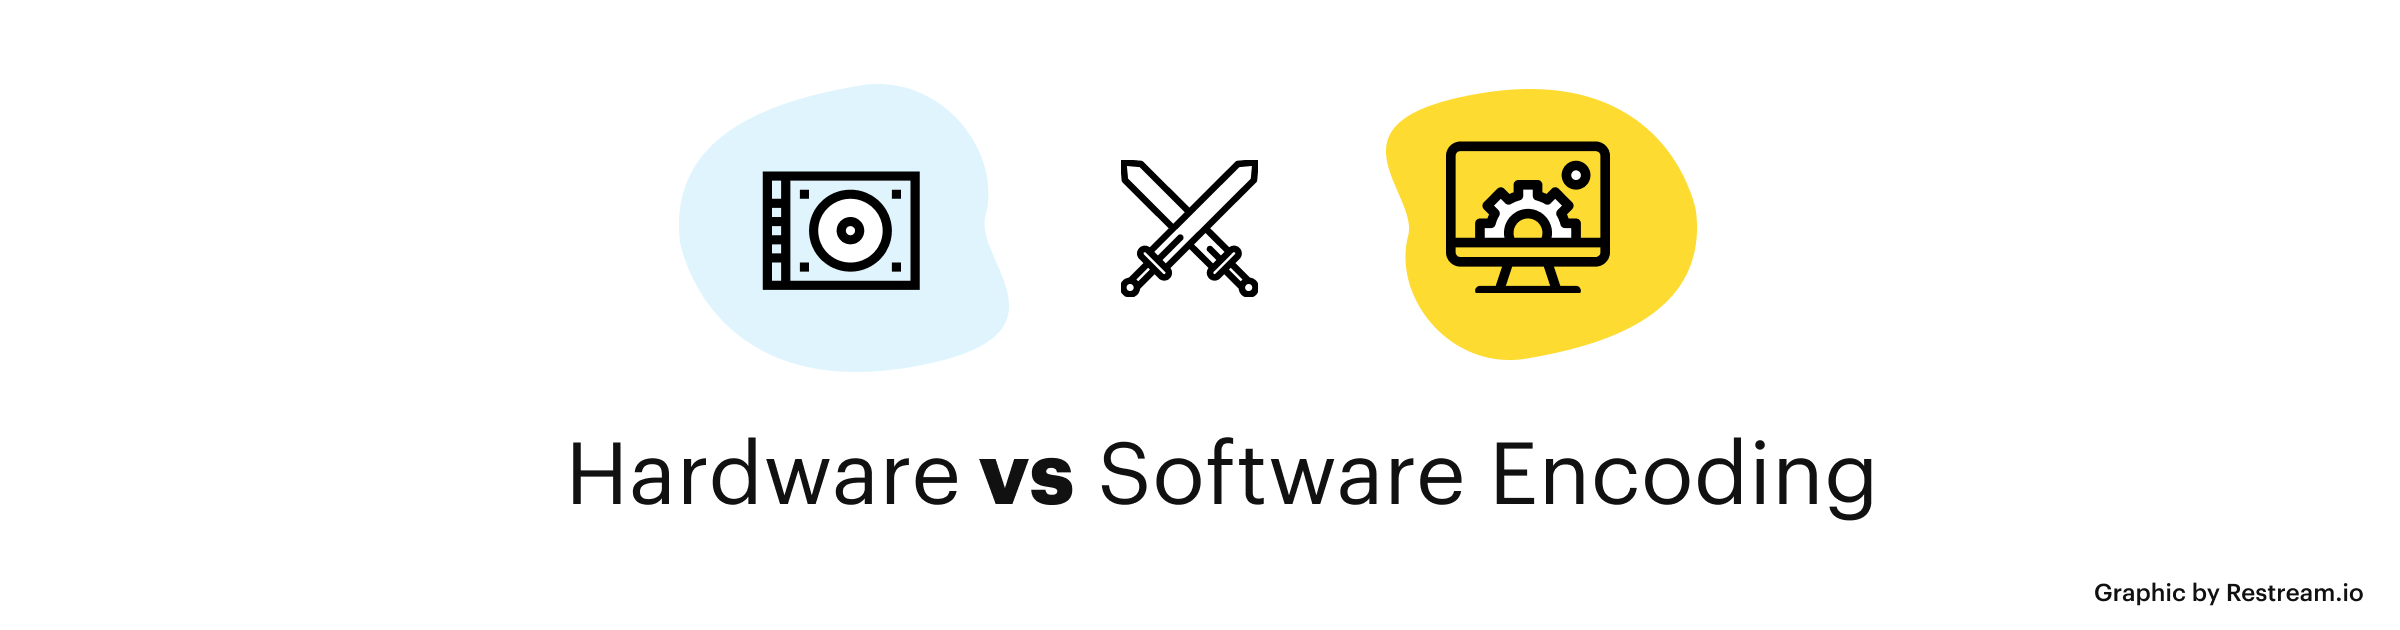 Hardware Encoding vs. Software Encoding